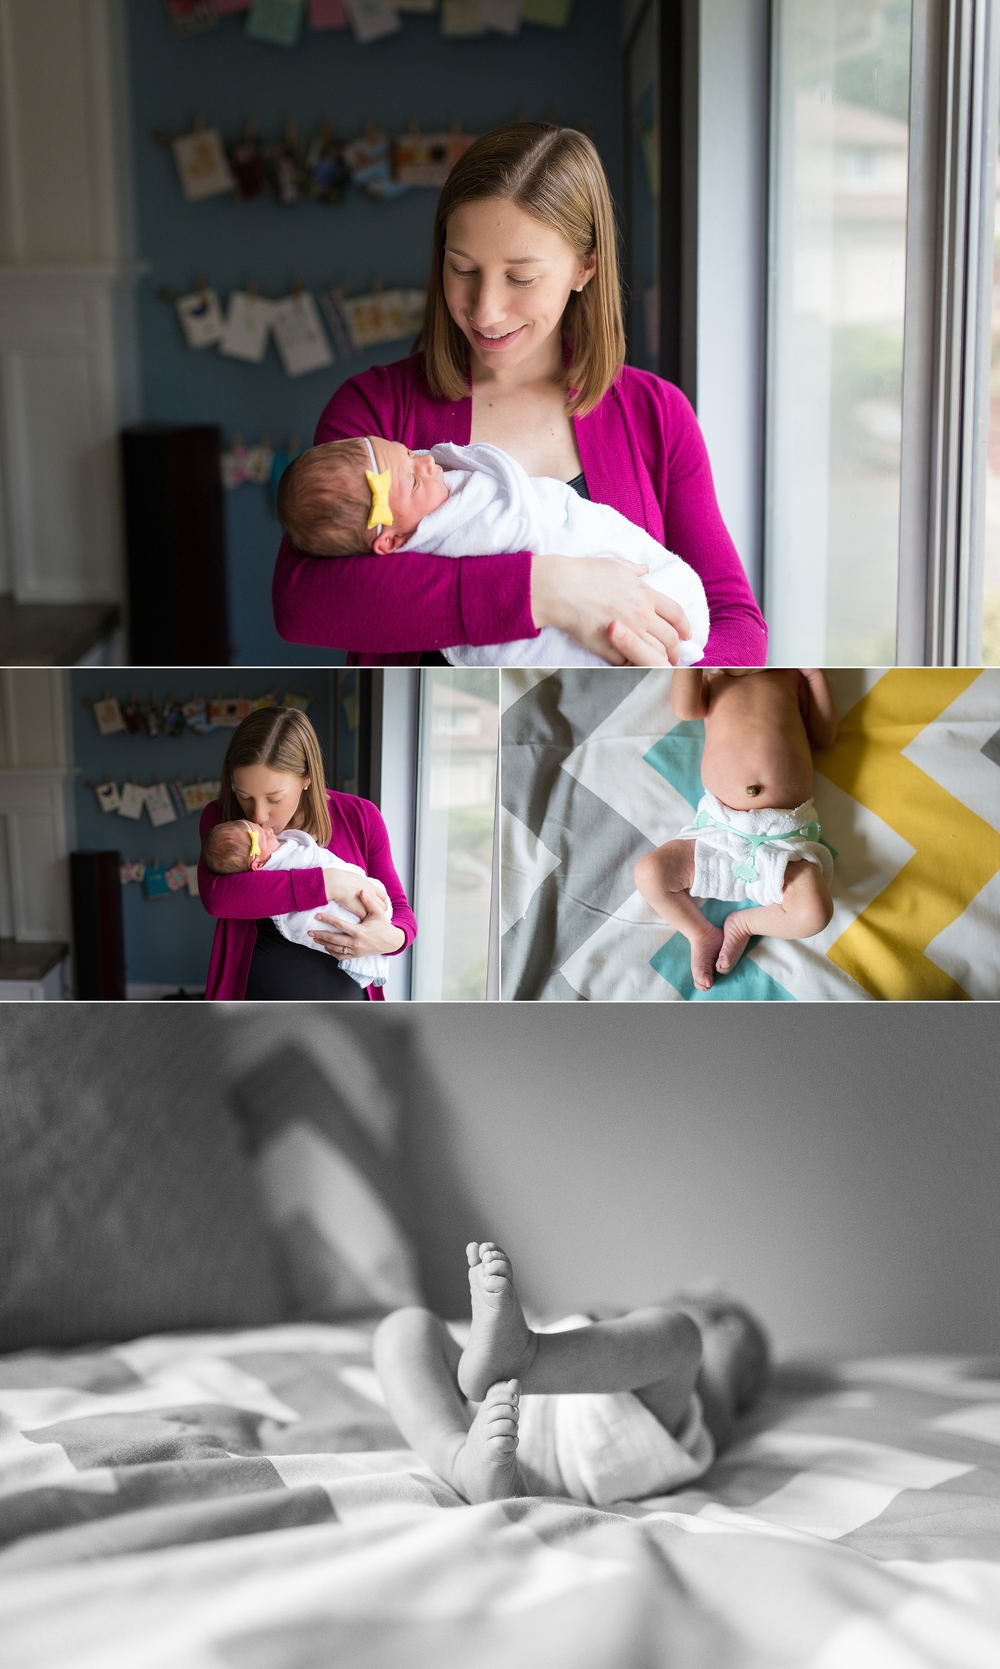 ashley vos photography seattle area lifestyle newborn photographer_0188.jpg